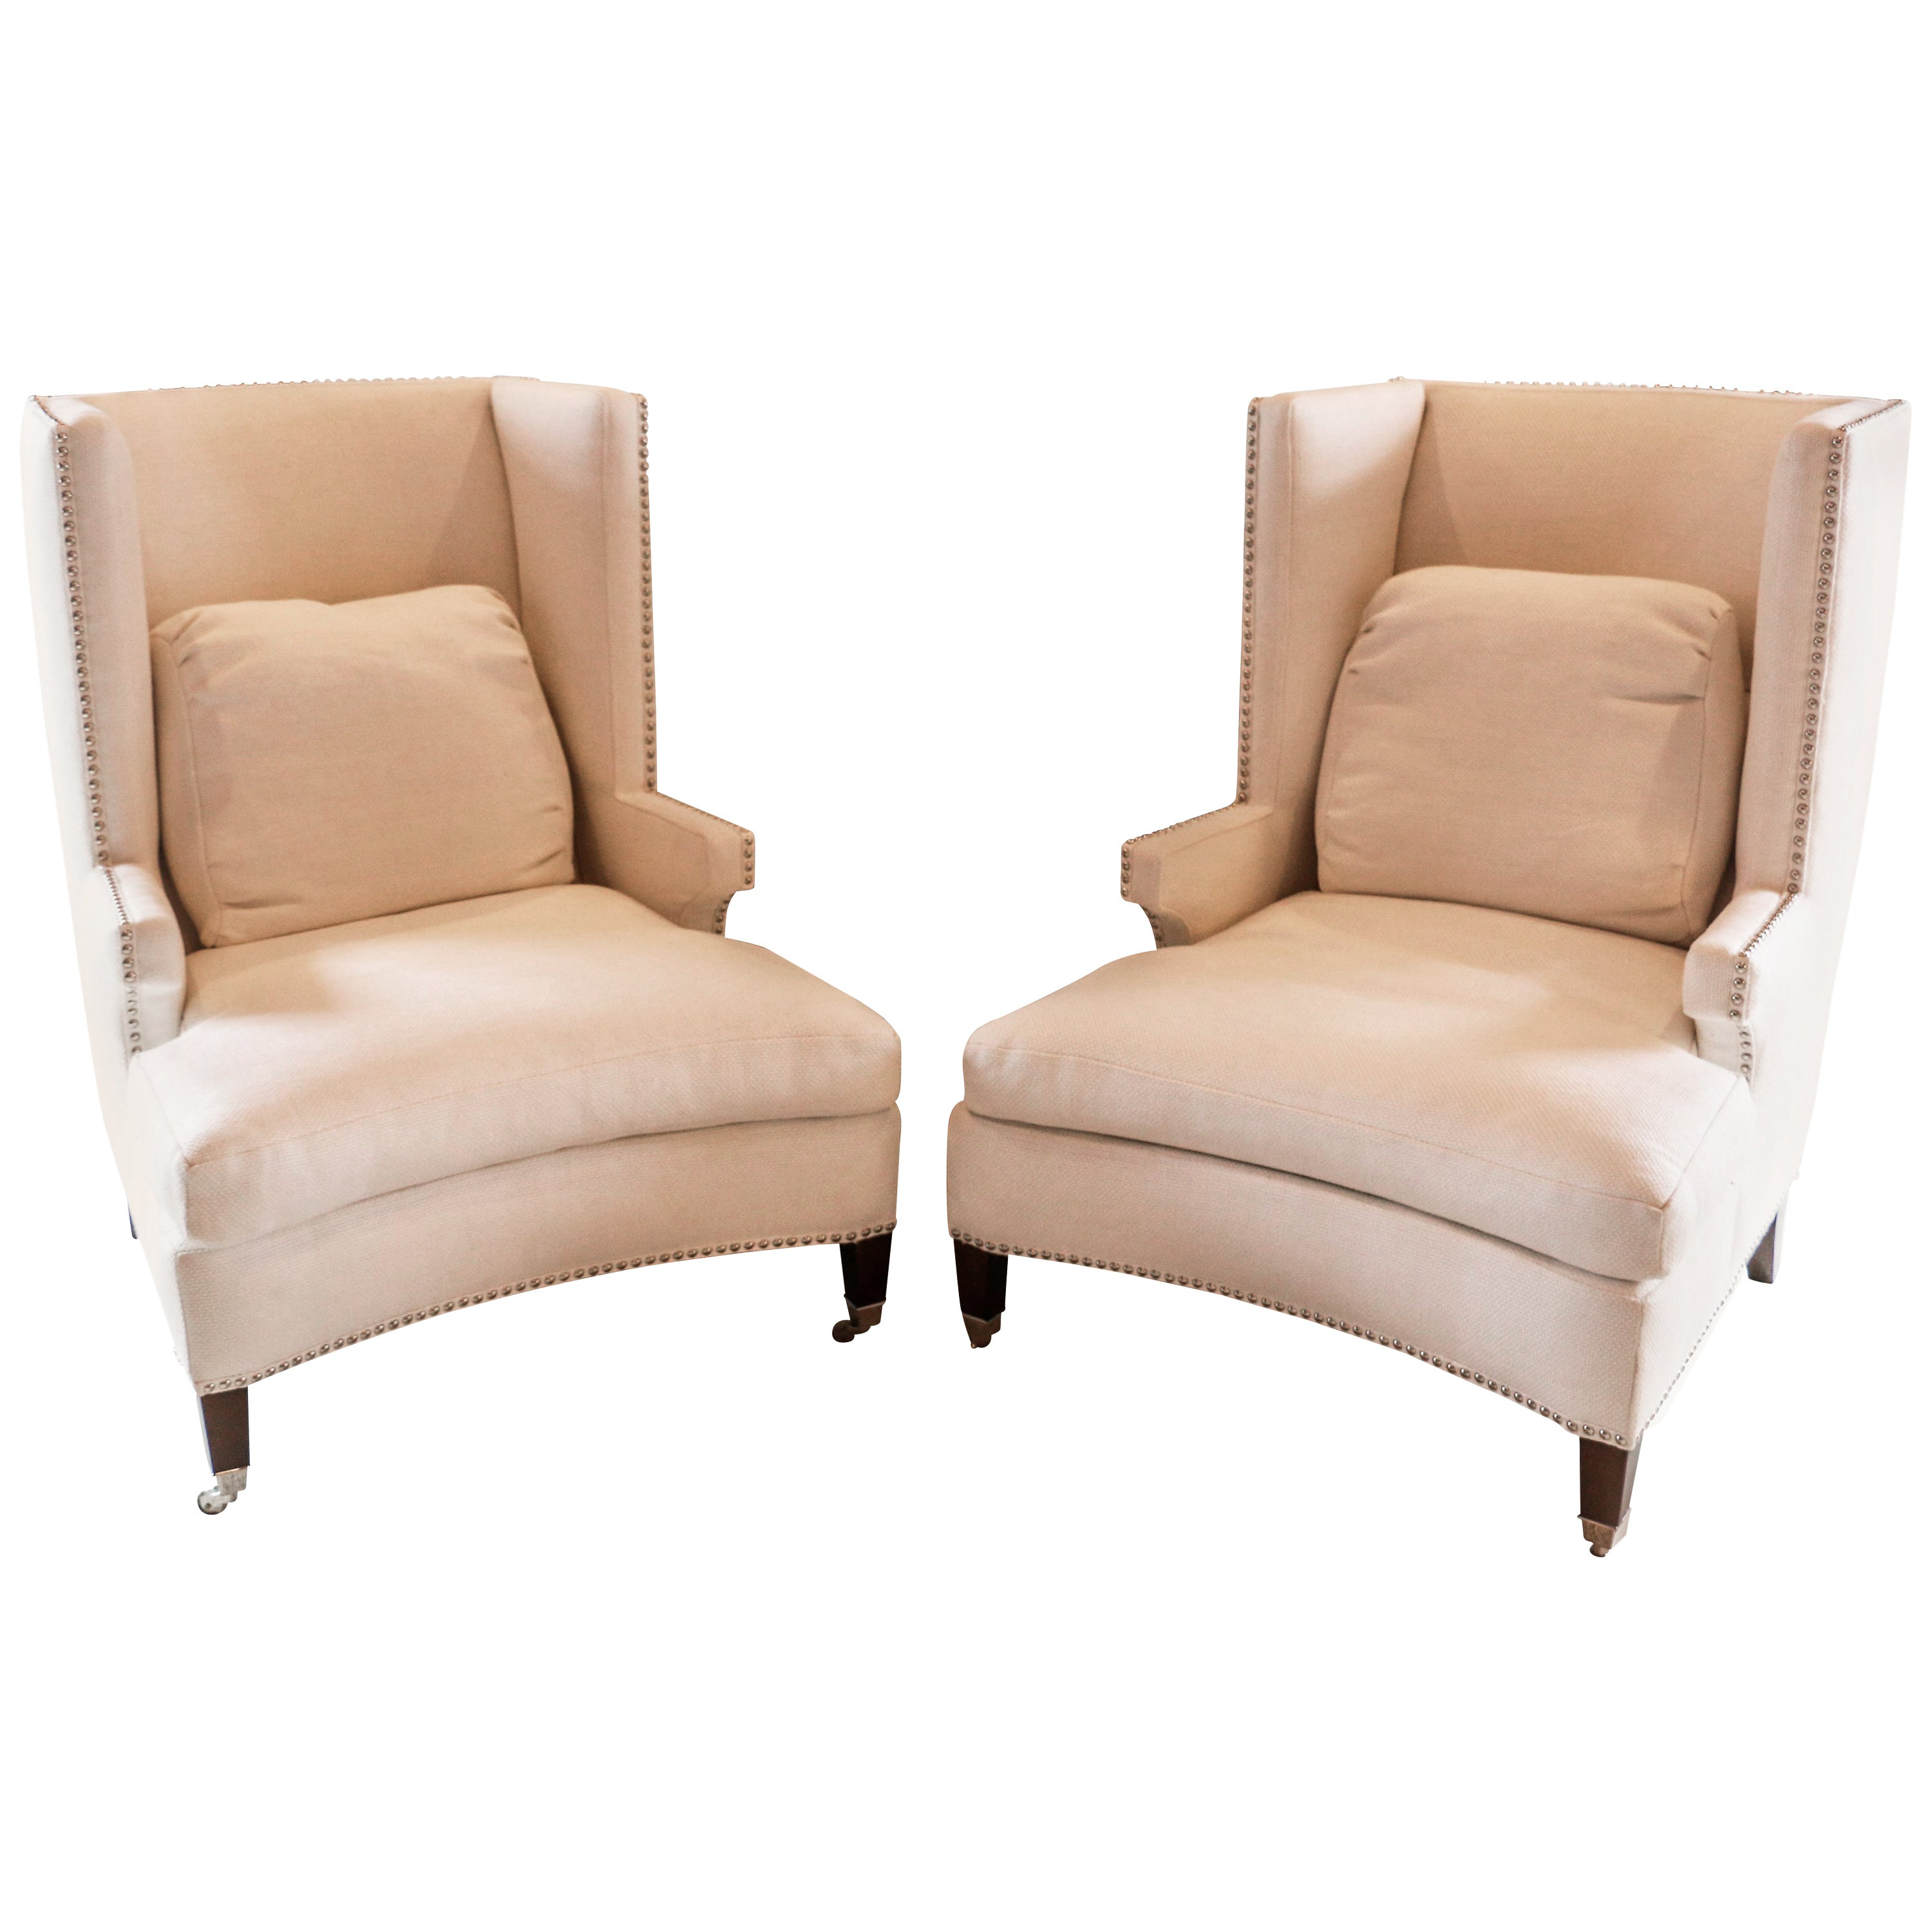 Pair of Fine Quality Custom Modern Wing Chair For Sale at 1stdibs